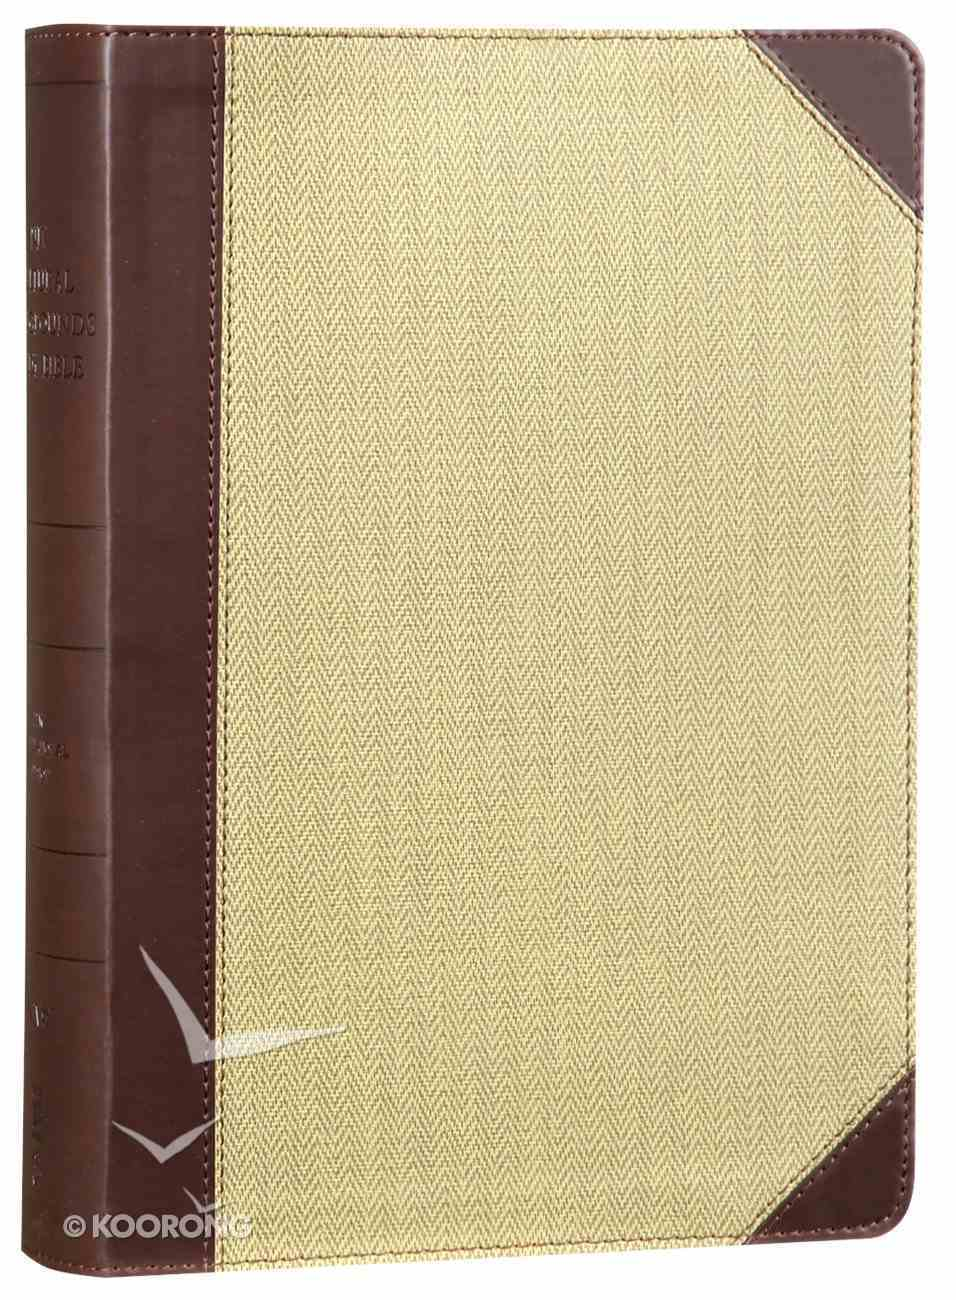 NIV Cultural Backgrounds Study Bible Brown/Tan Red Letter Edition Premium Imitation Leather